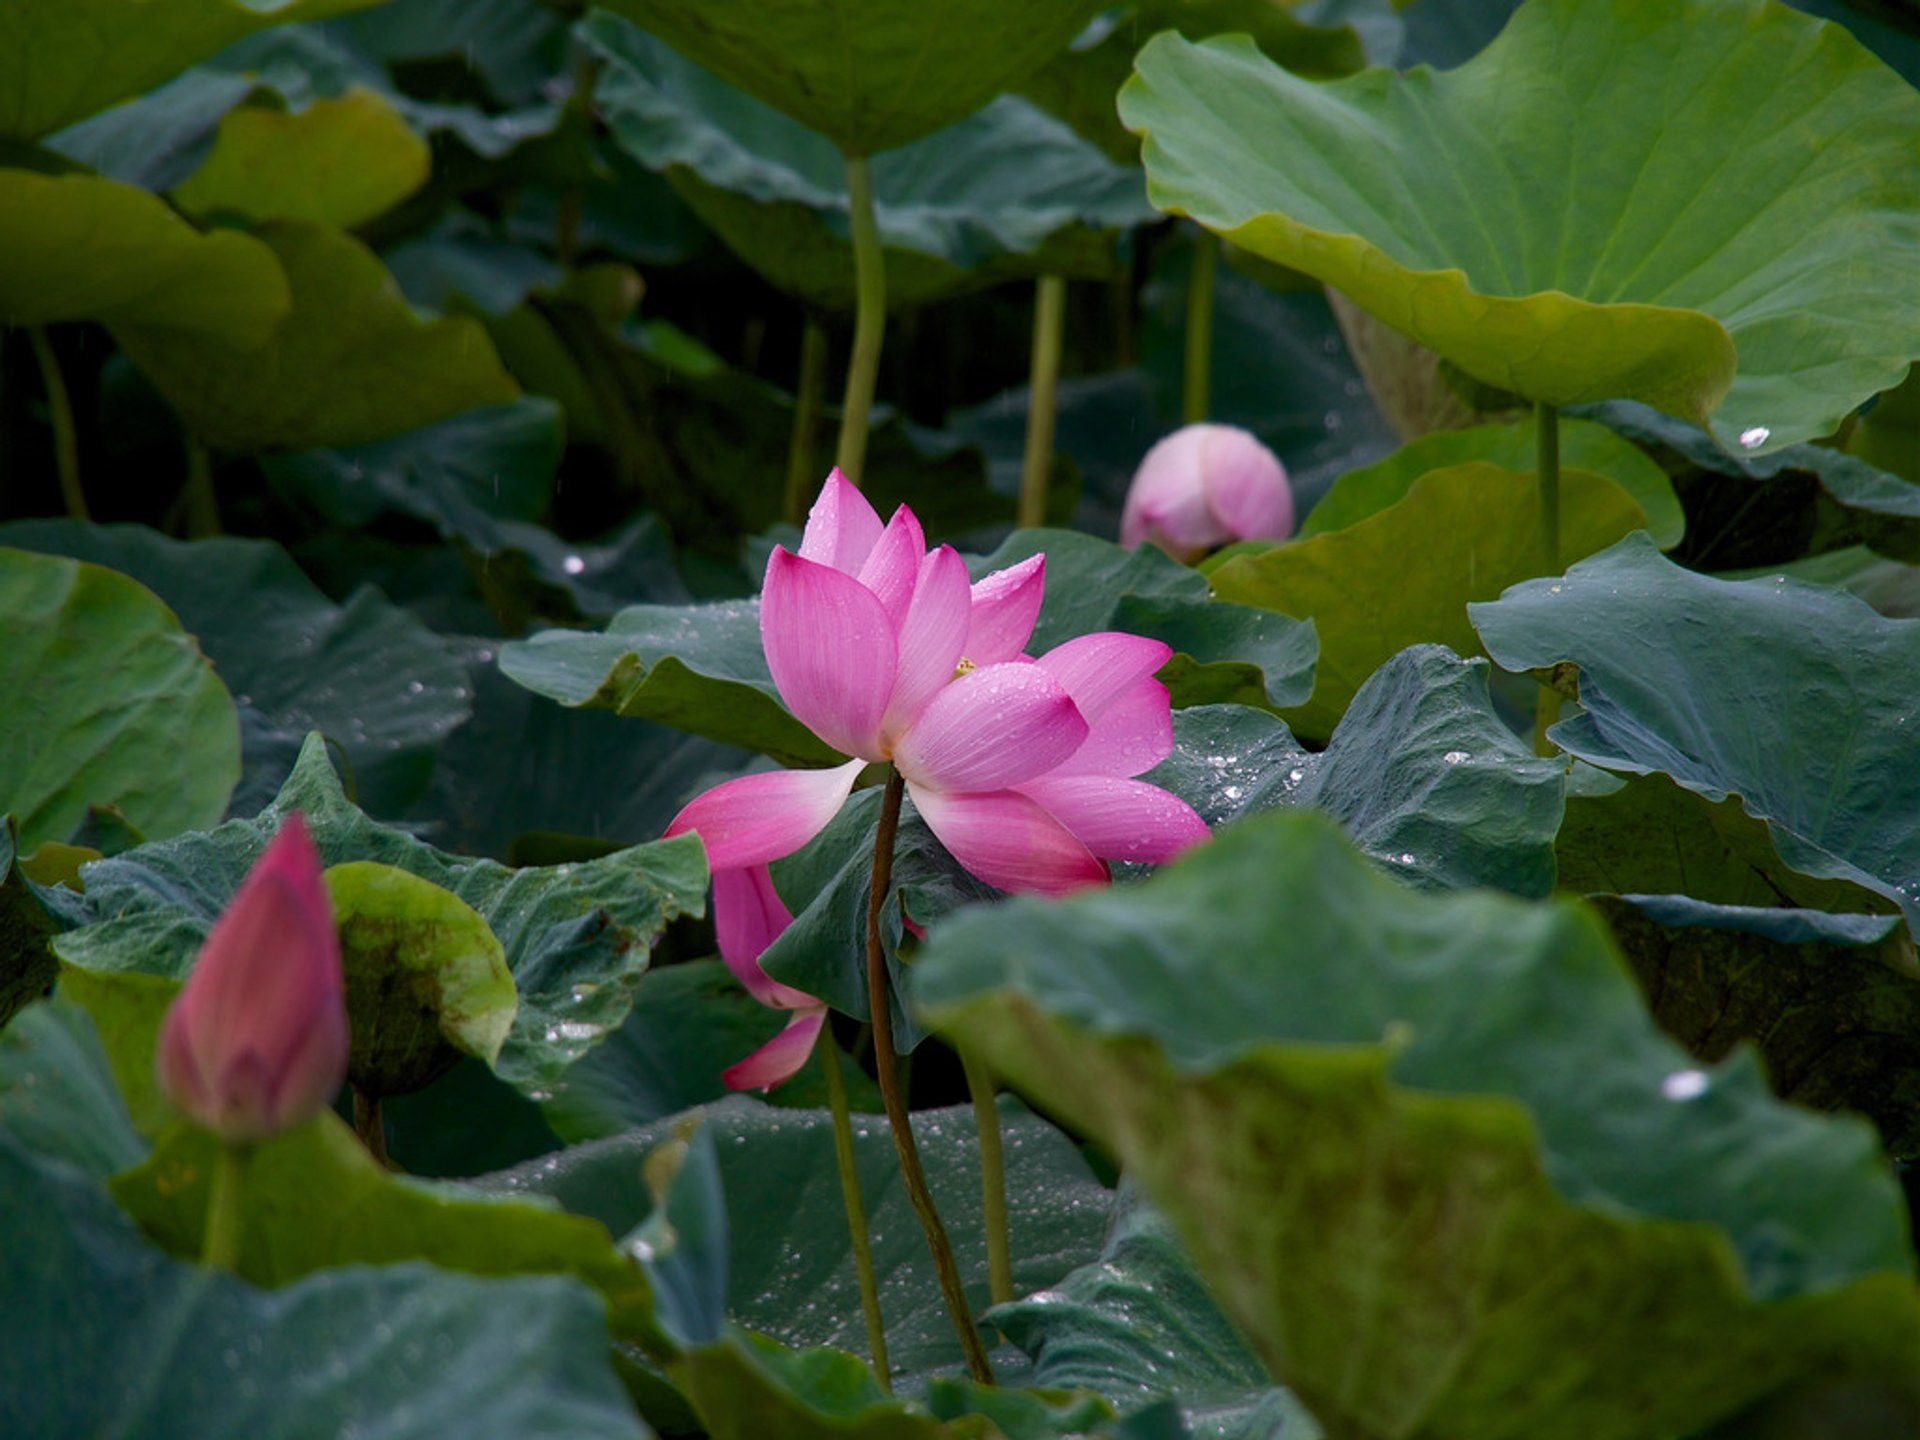 Tainan Baihe Lotus Season in Taiwan 2019 - Best Time